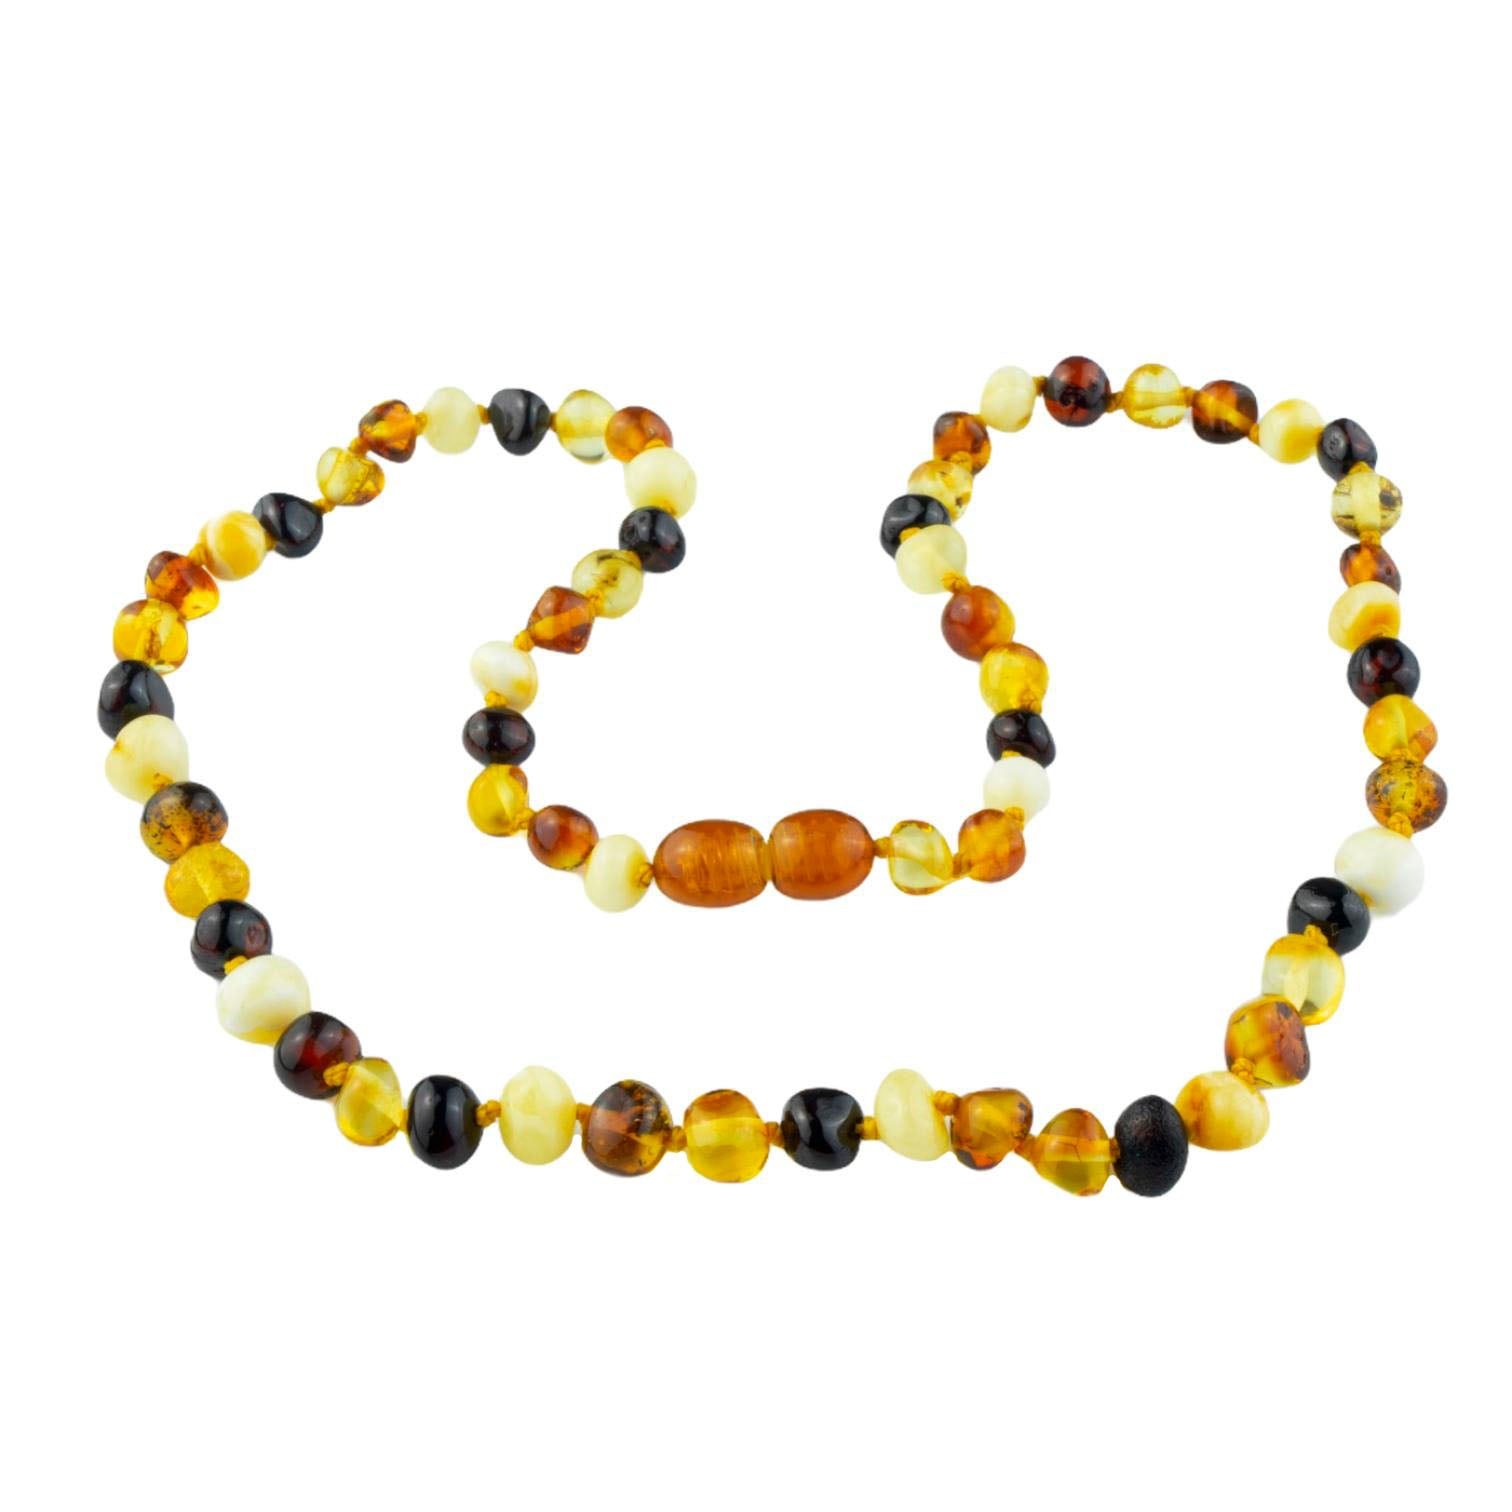 Natural Baltic Amber Long Adult Necklace with Polished Oval Shape Mix Colored Beads